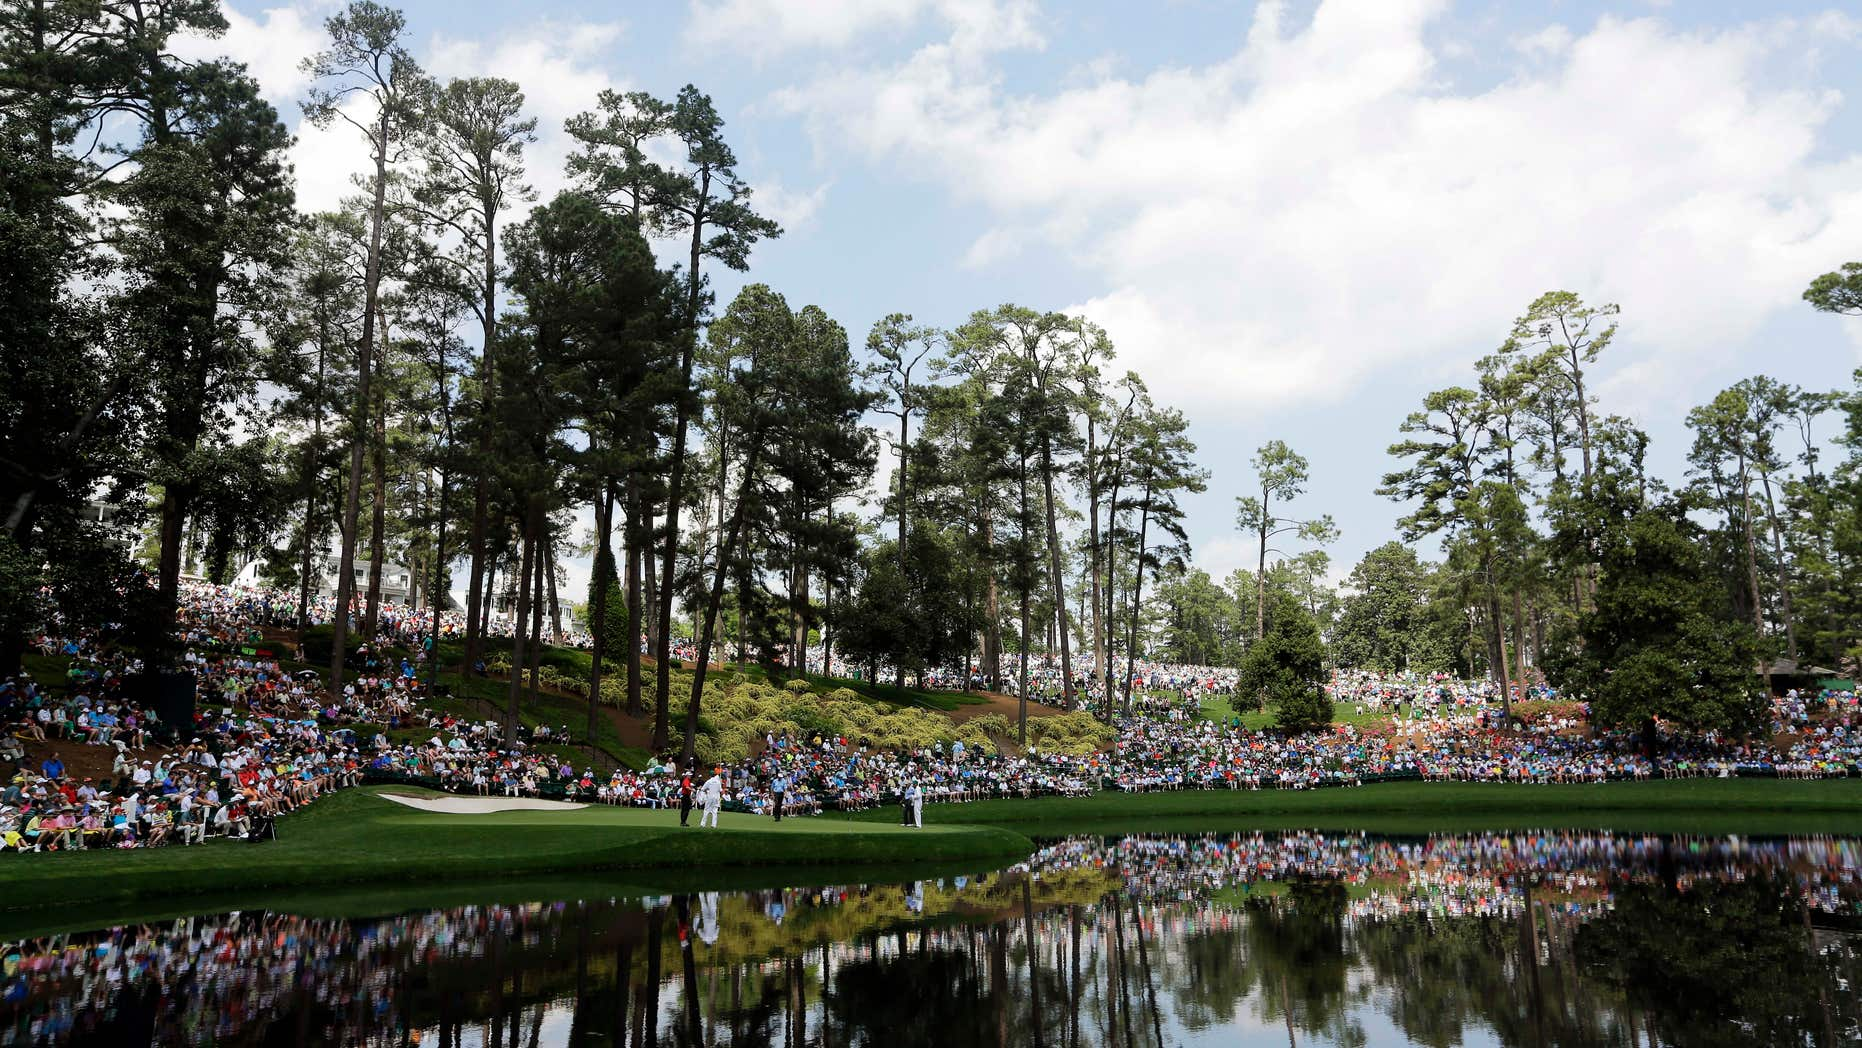 April 8, 2015: Spectators sit around the ninth hole during the Par 3 contest at the Masters golf tournament.